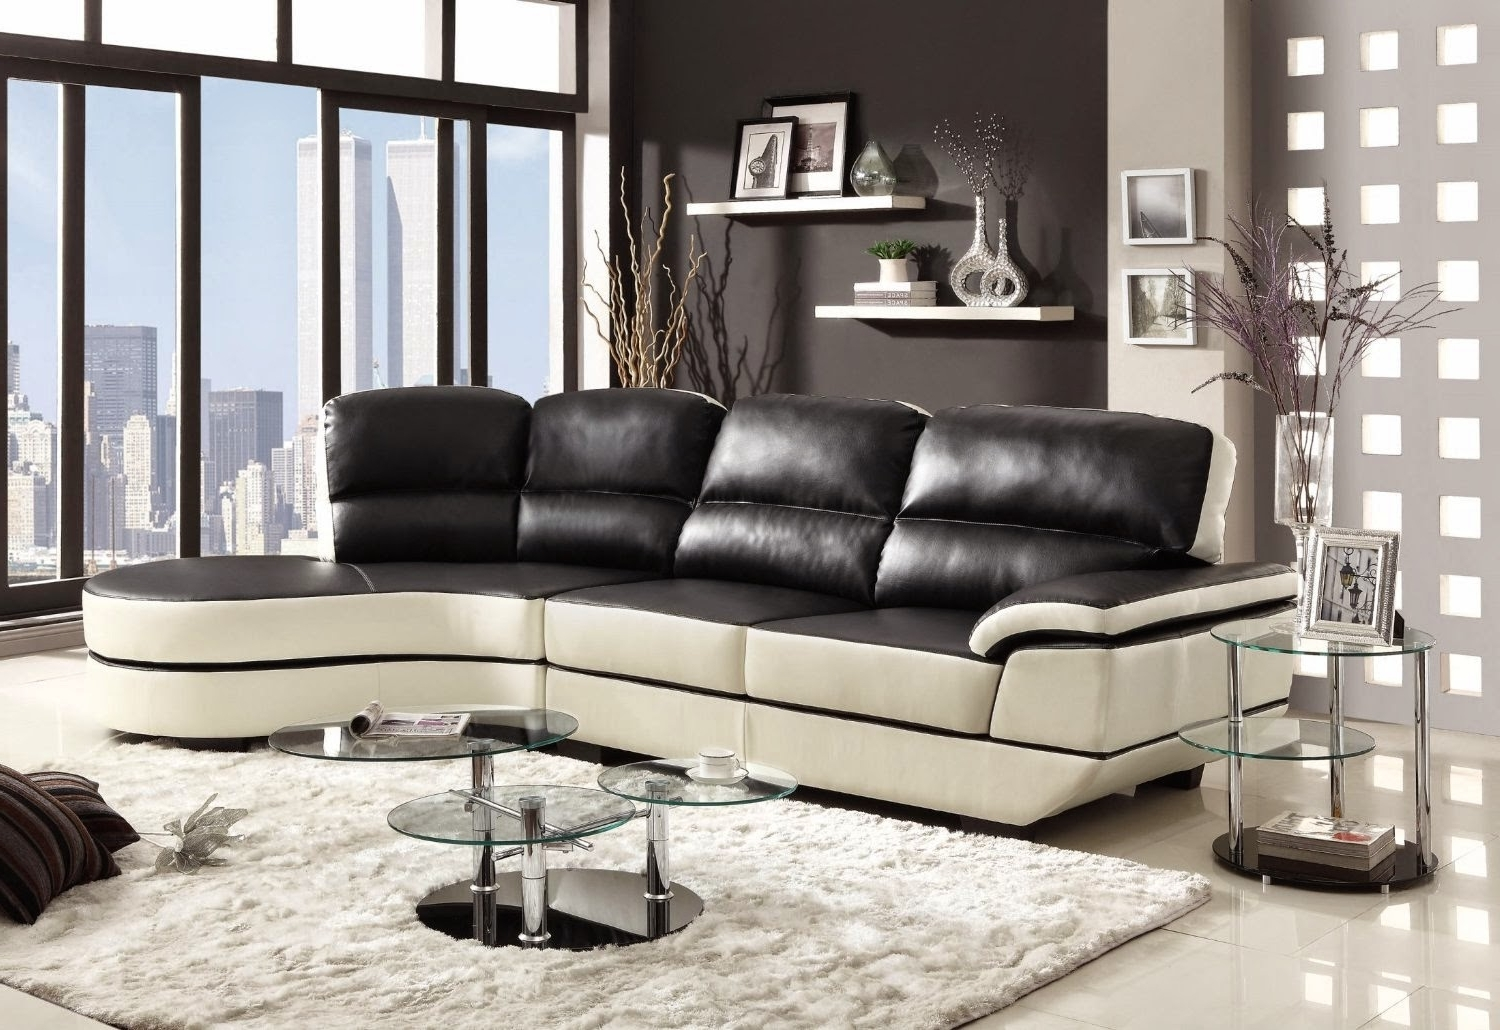 Furniture : Sectional Sofa Ebay Corner Couch 6 Seater 4 Recliner Pertaining To Widely Used 100X80 Sectional Sofas (View 10 of 20)